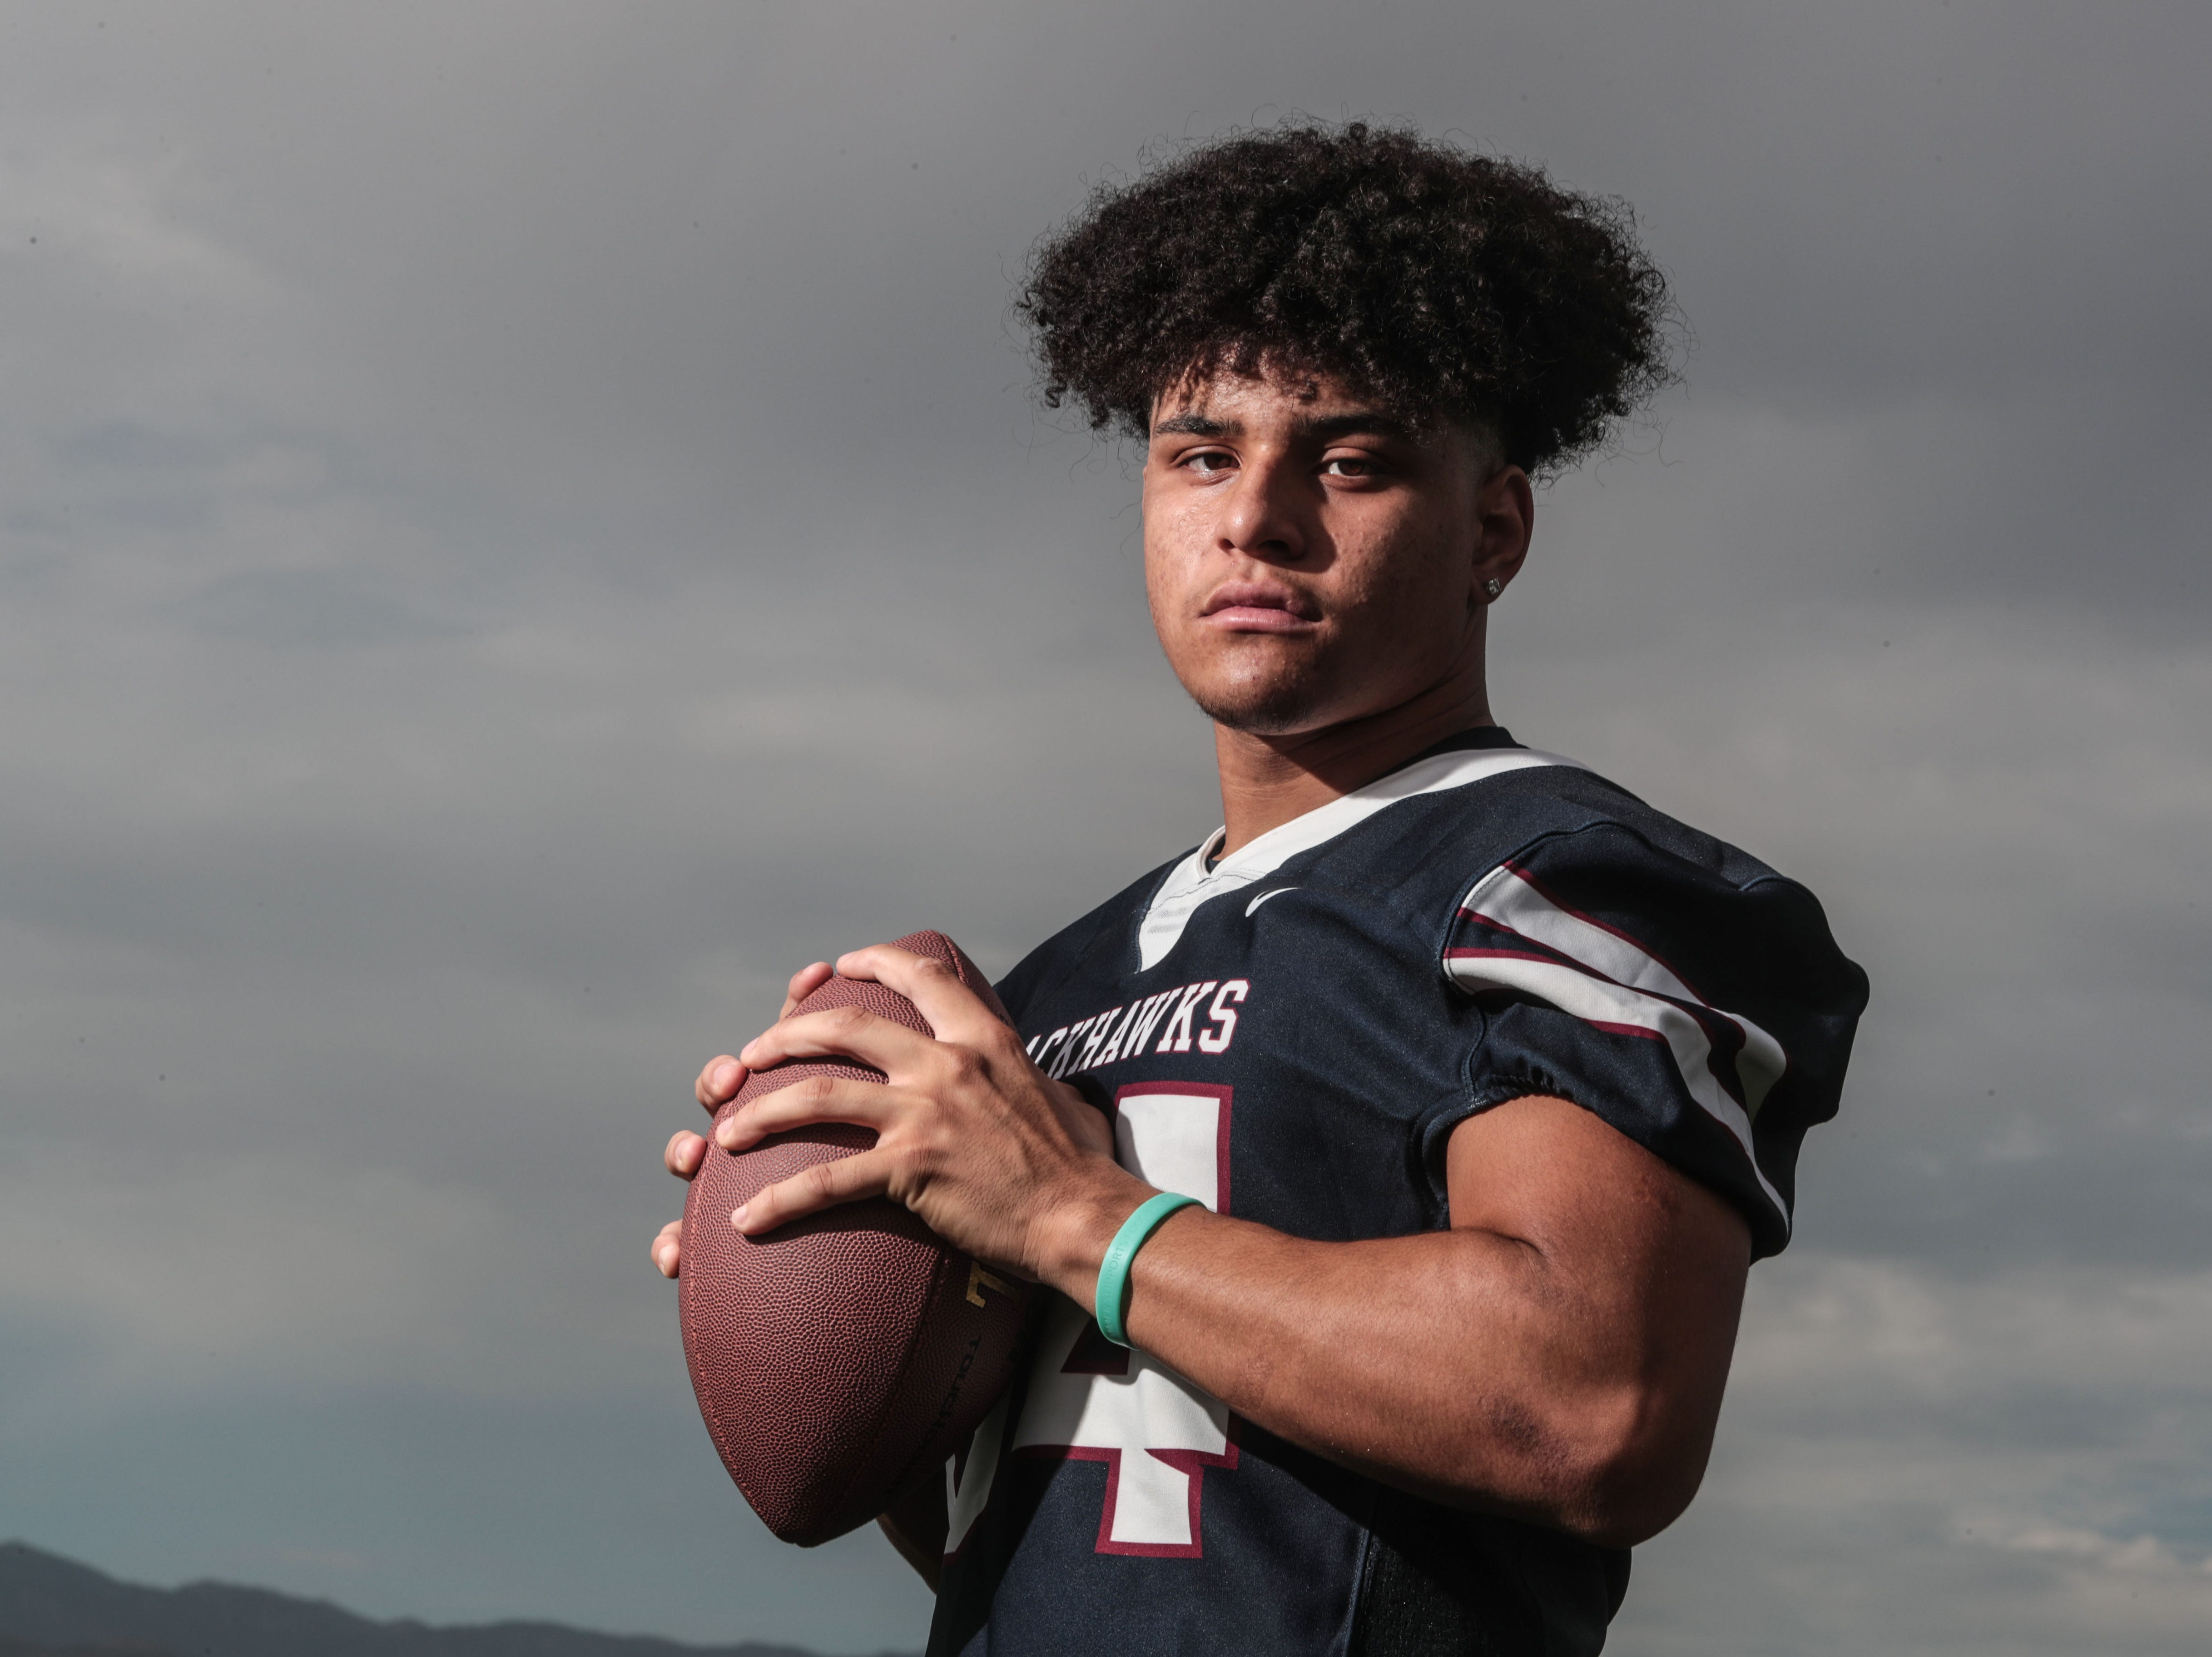 La Quinta's Fred Massie on Tuesday, July 31, 2018 in La Quinta. He is No. 6 on  The Desert Sun's 2018 Elite 11 list.